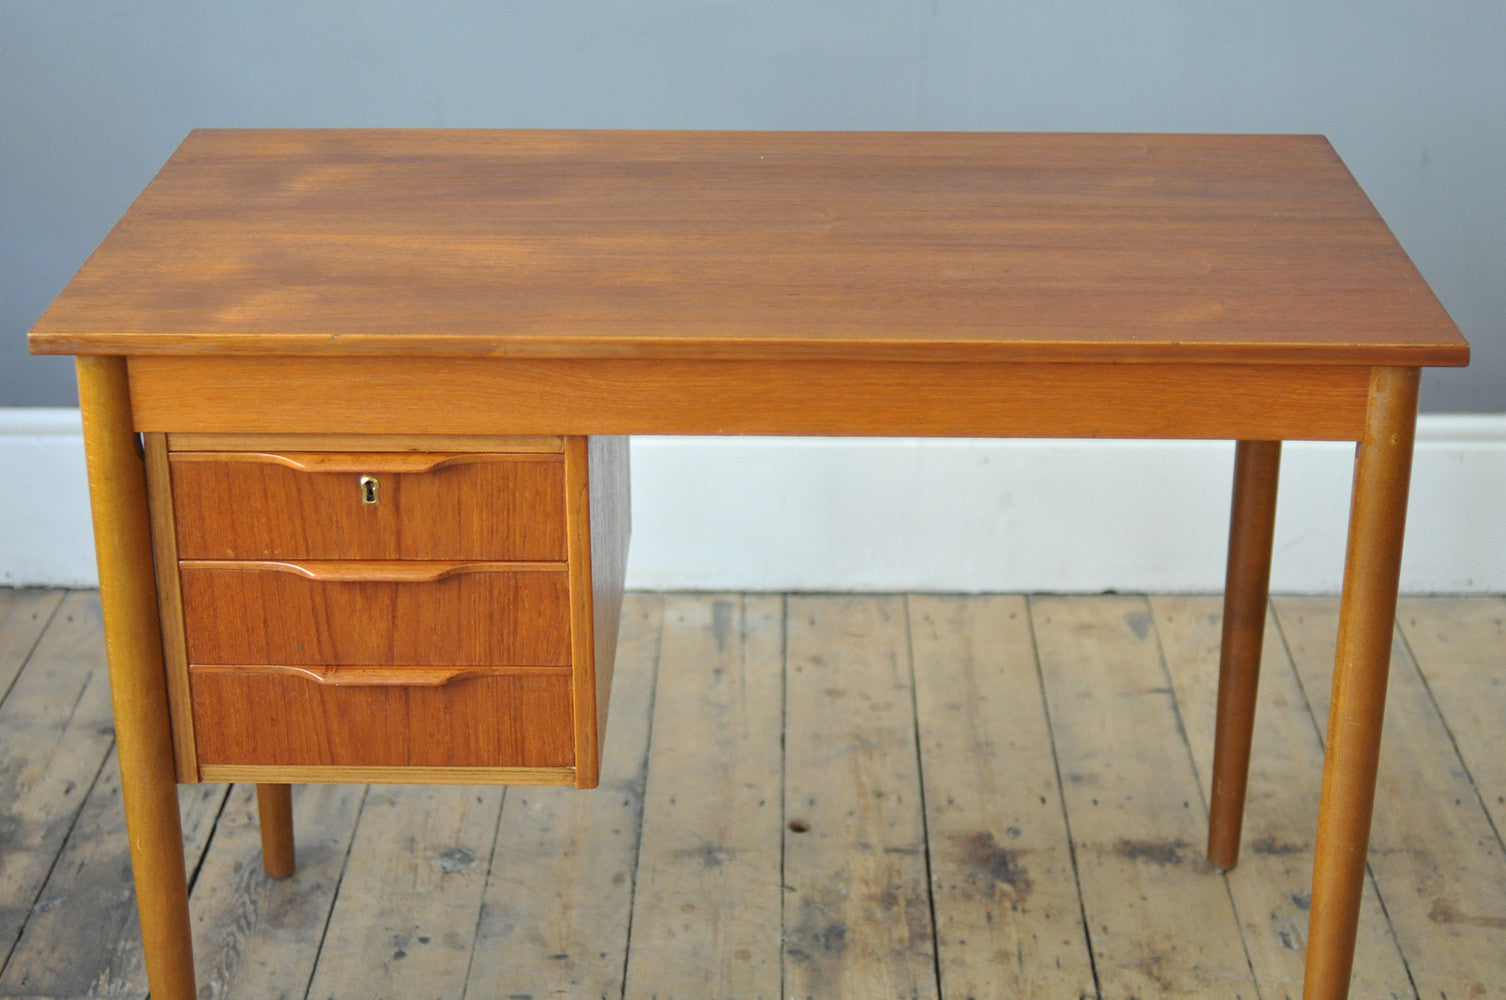 inset at top with teak furniture storage w micarta id sale danish desks pieces z case for fnt f desk